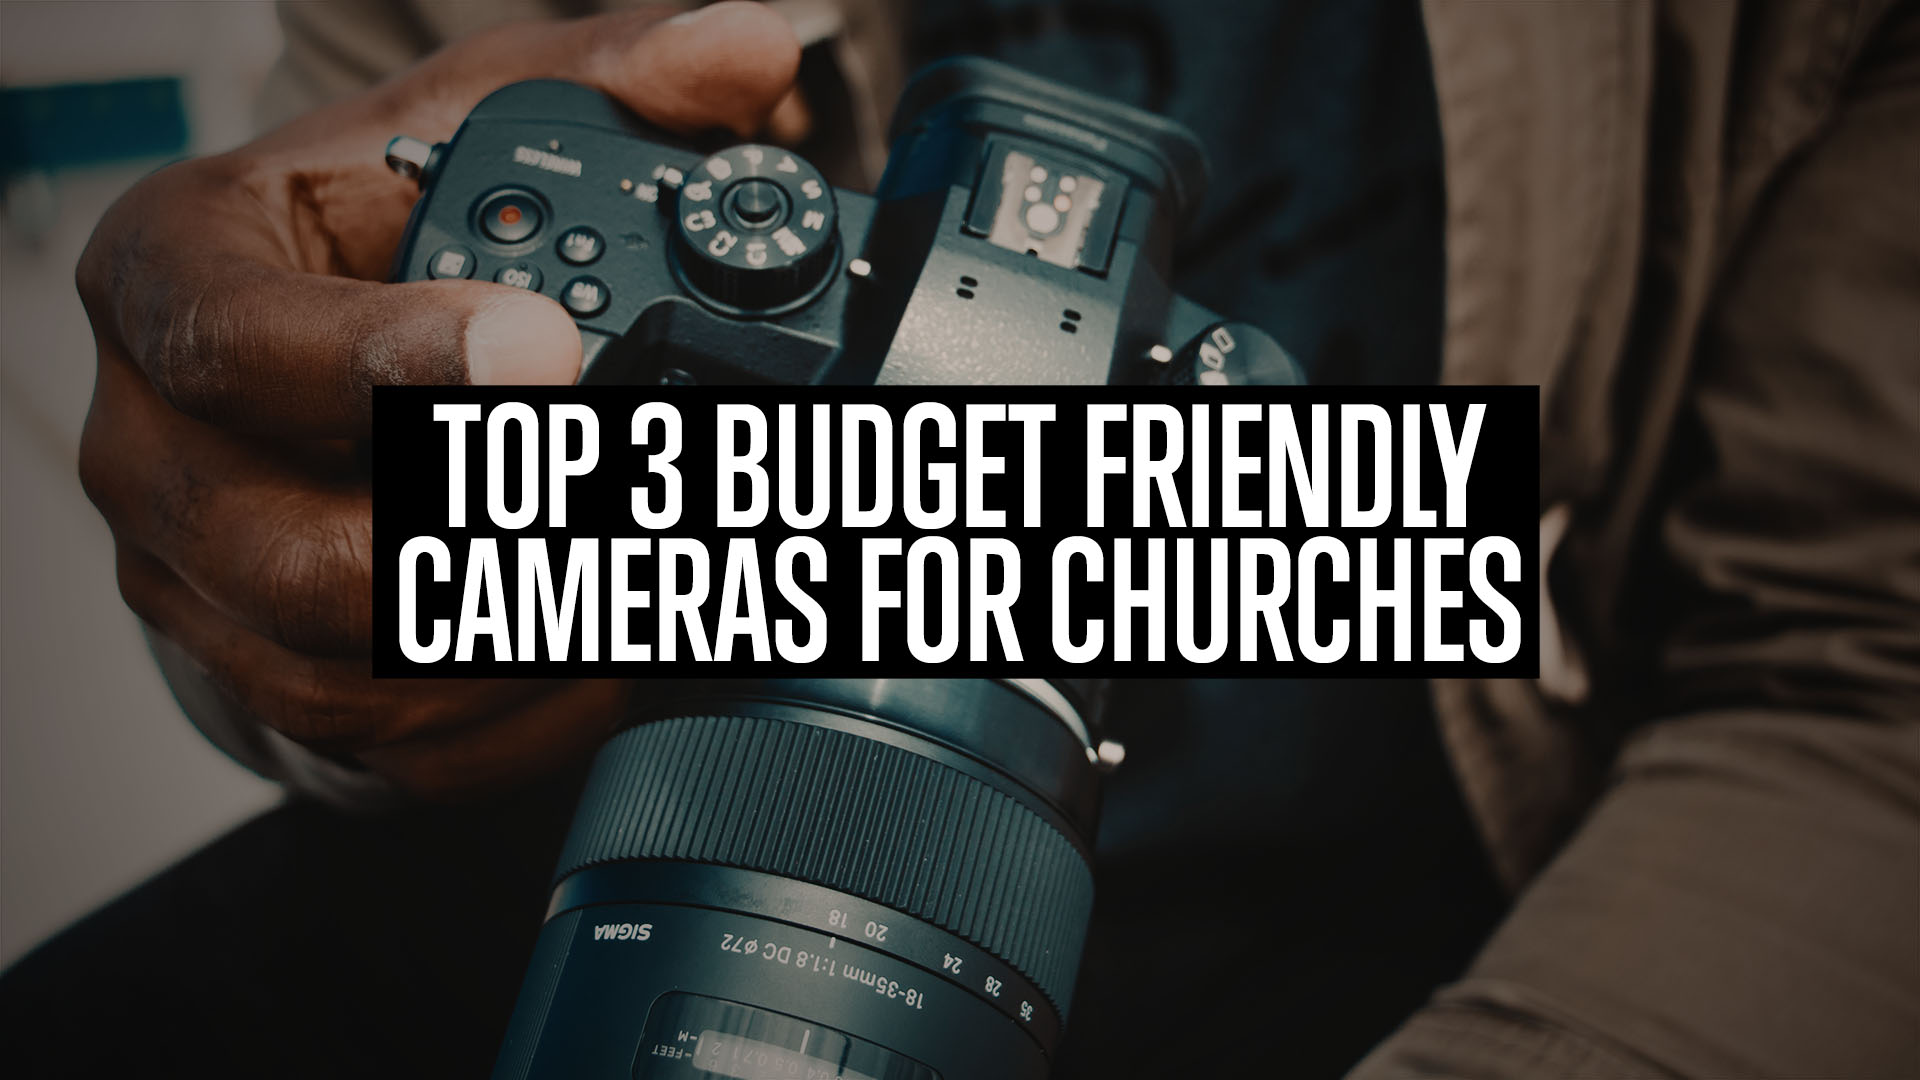 Top 3 Budget Friendly Cameras for Churches